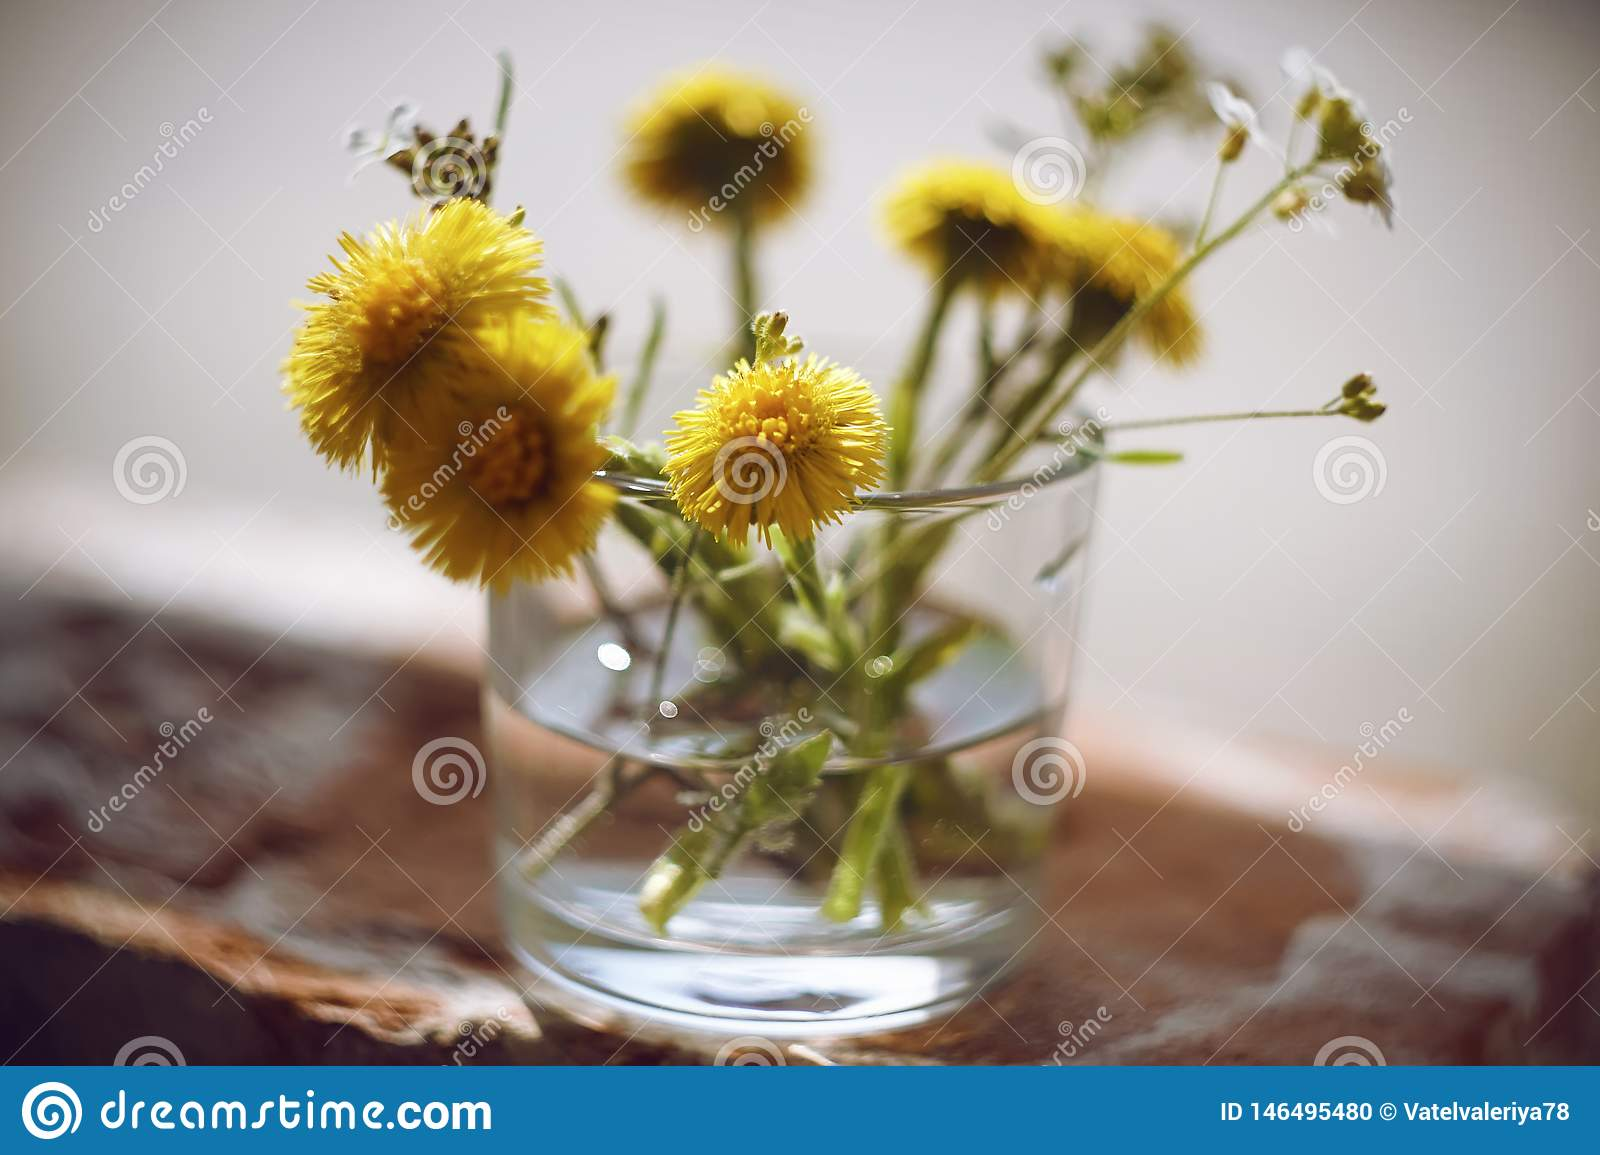 Yellow and white flowers are in a vase with water